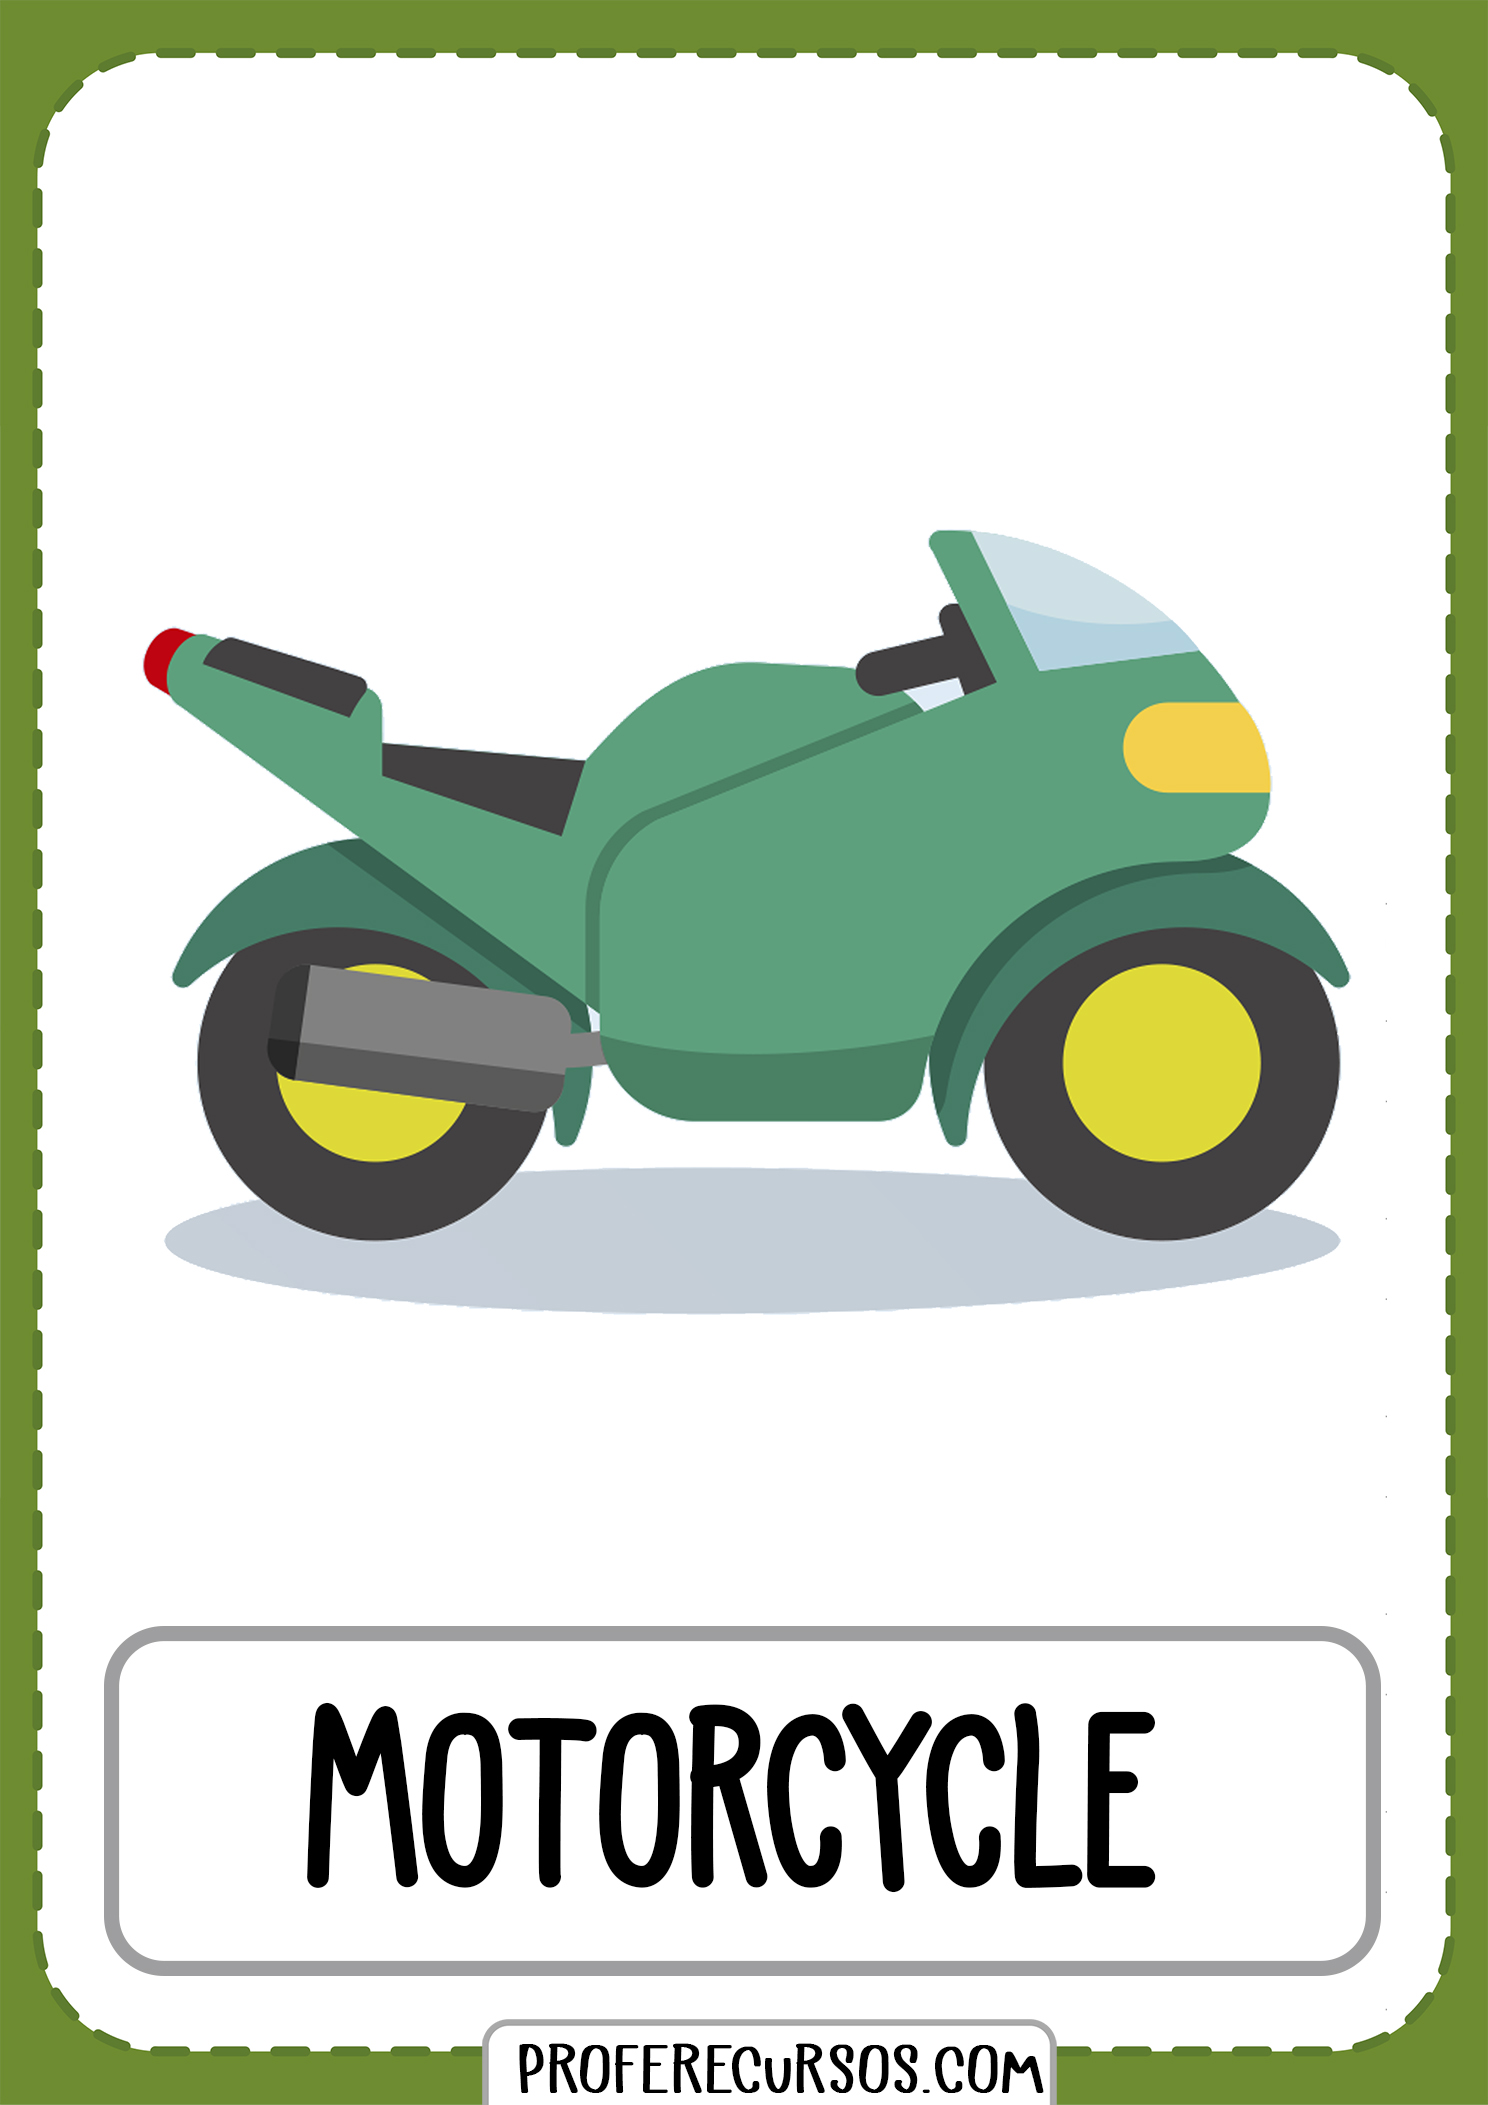 Means-of-transport-vocabulary-motorcycle